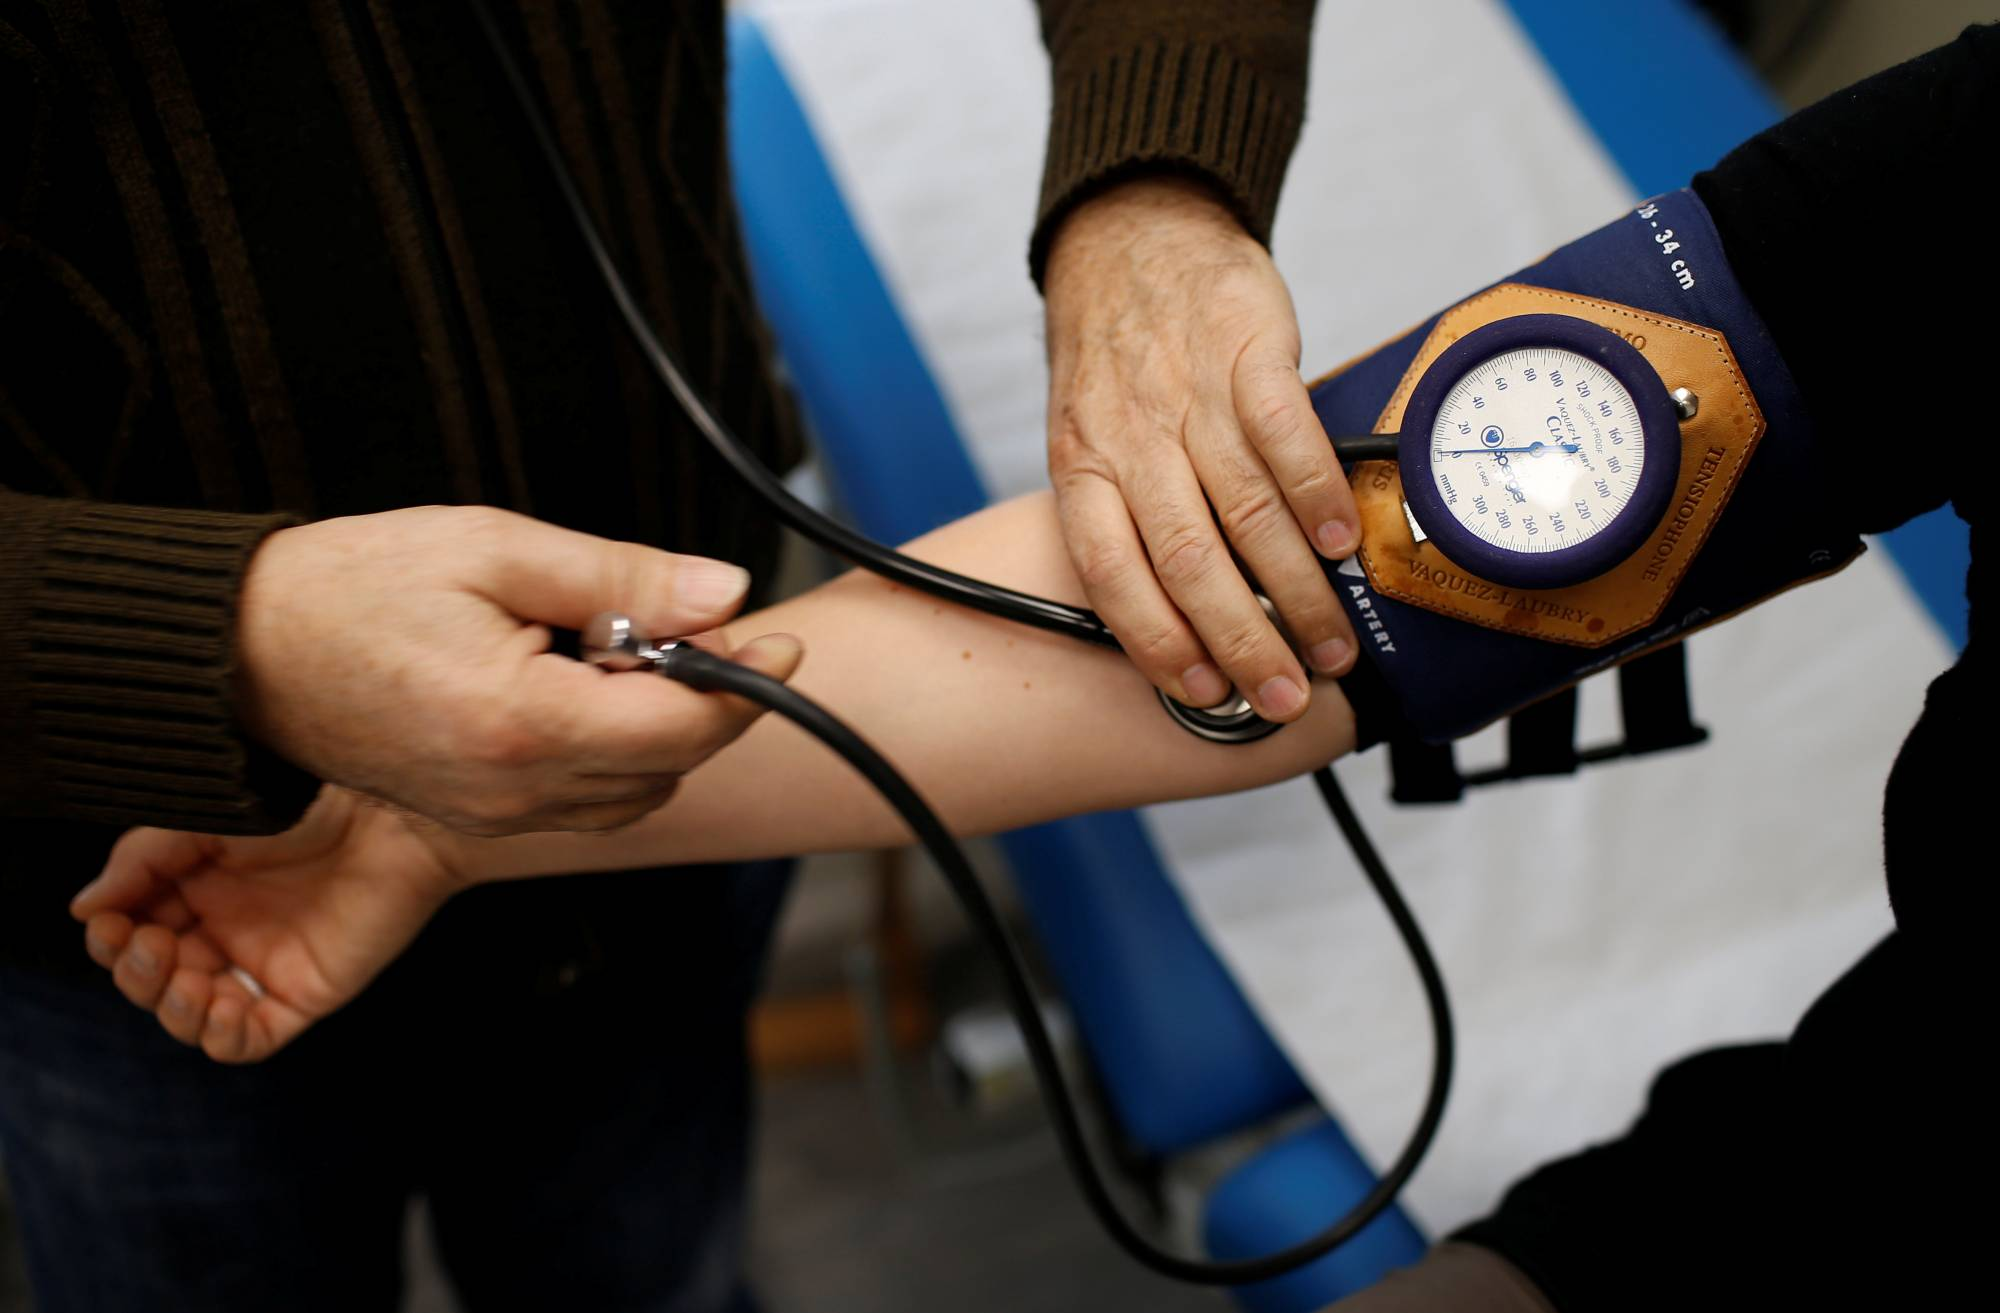 Retired French doctor Jean-Francois Rechner, 67, measures the blood pressure of a patient during a consultation at the 'Service Medical de Proximite' clinic in Laval